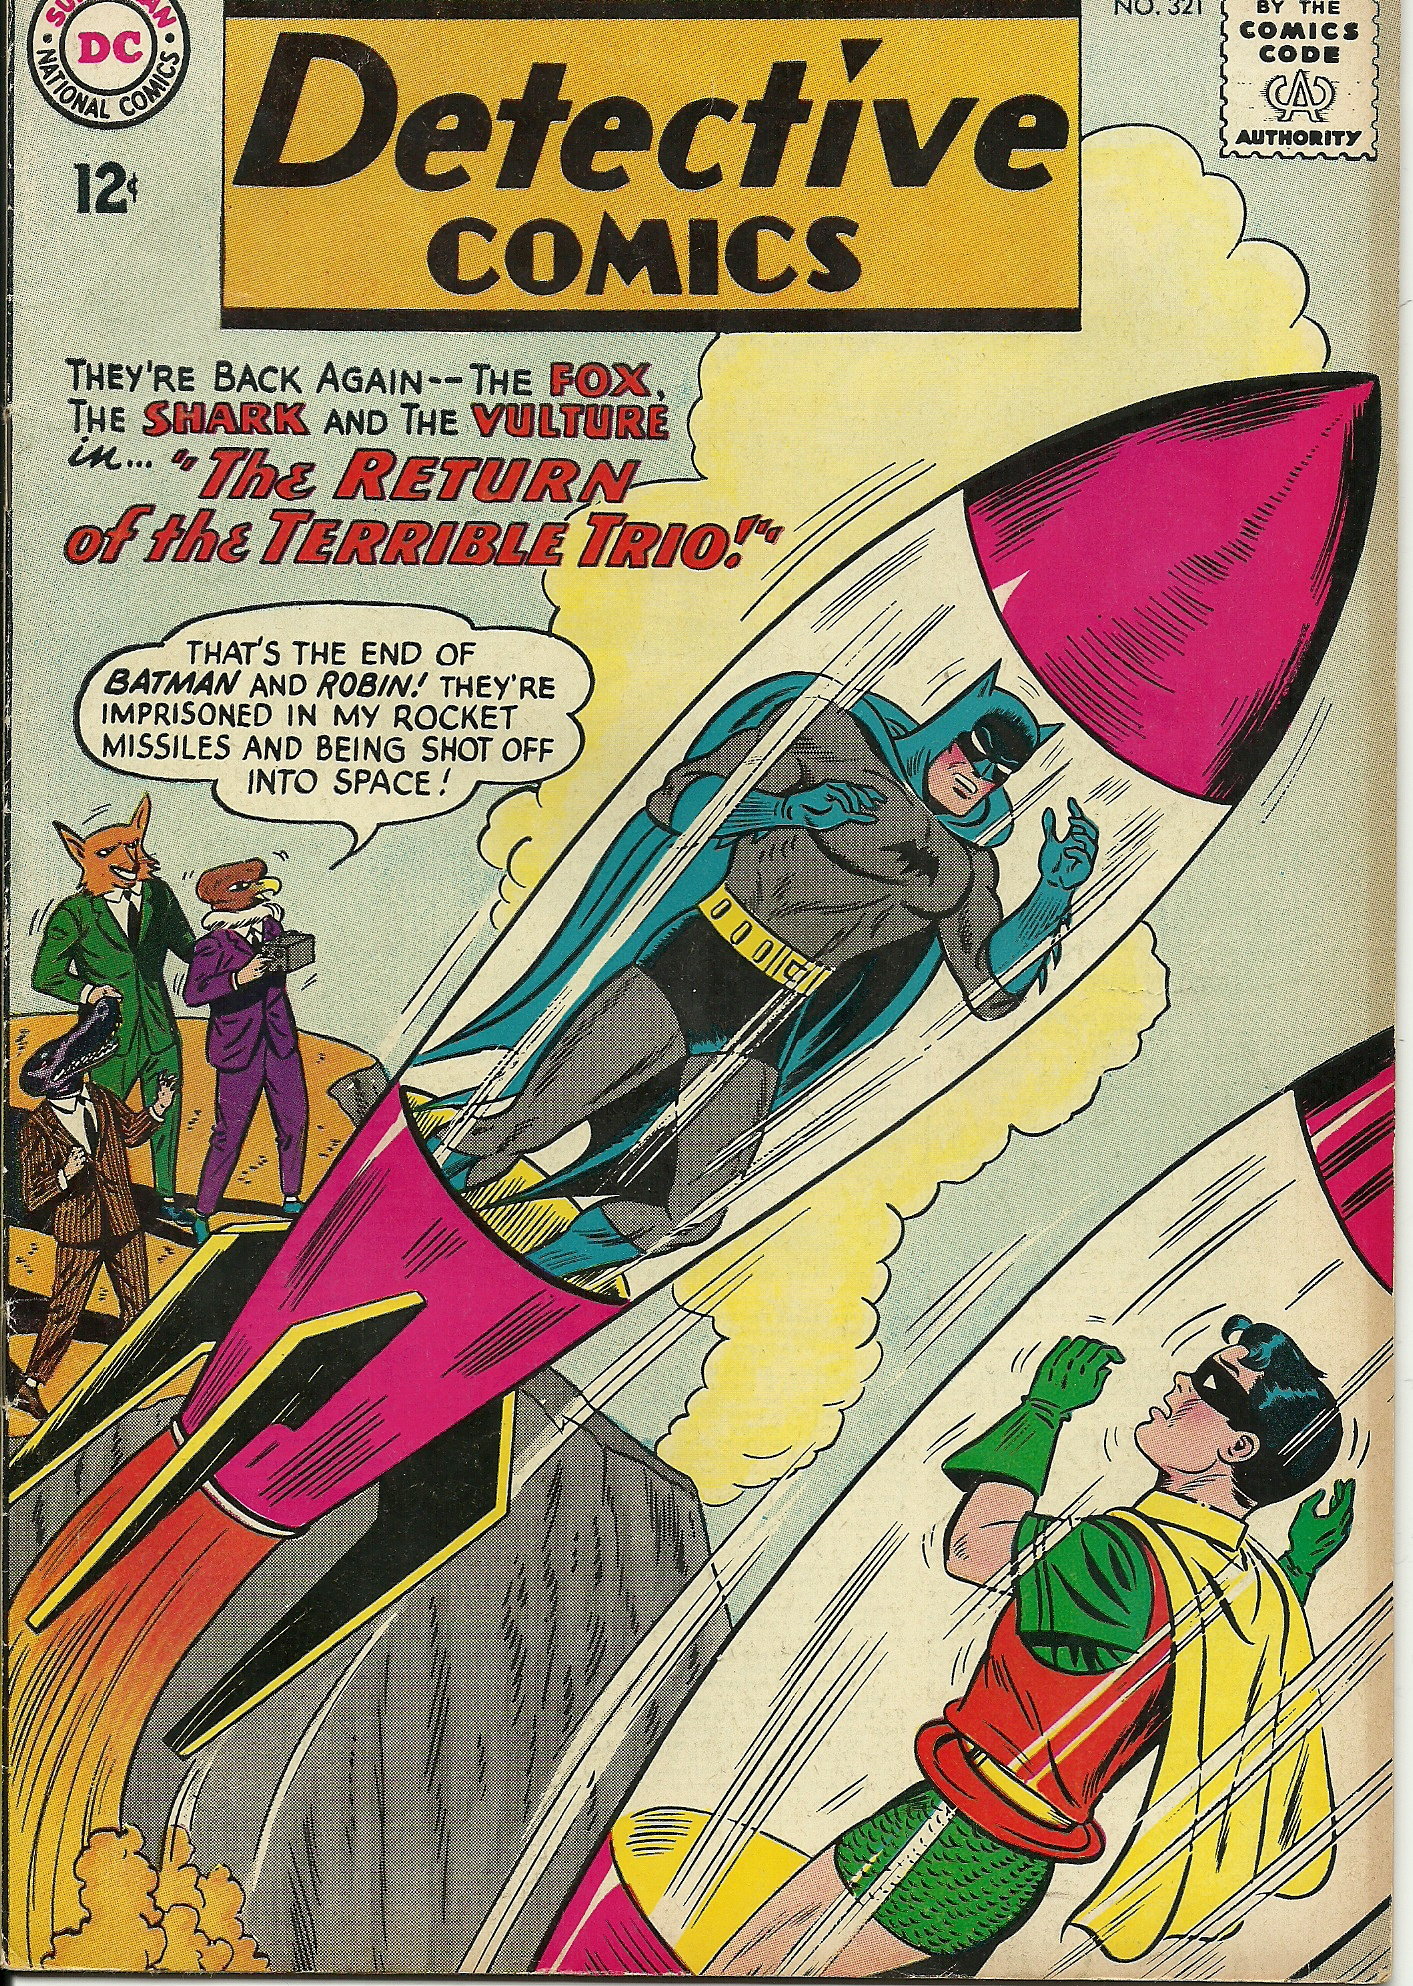 Detective Comics–No. 321–November 1963, In good condition. All ...